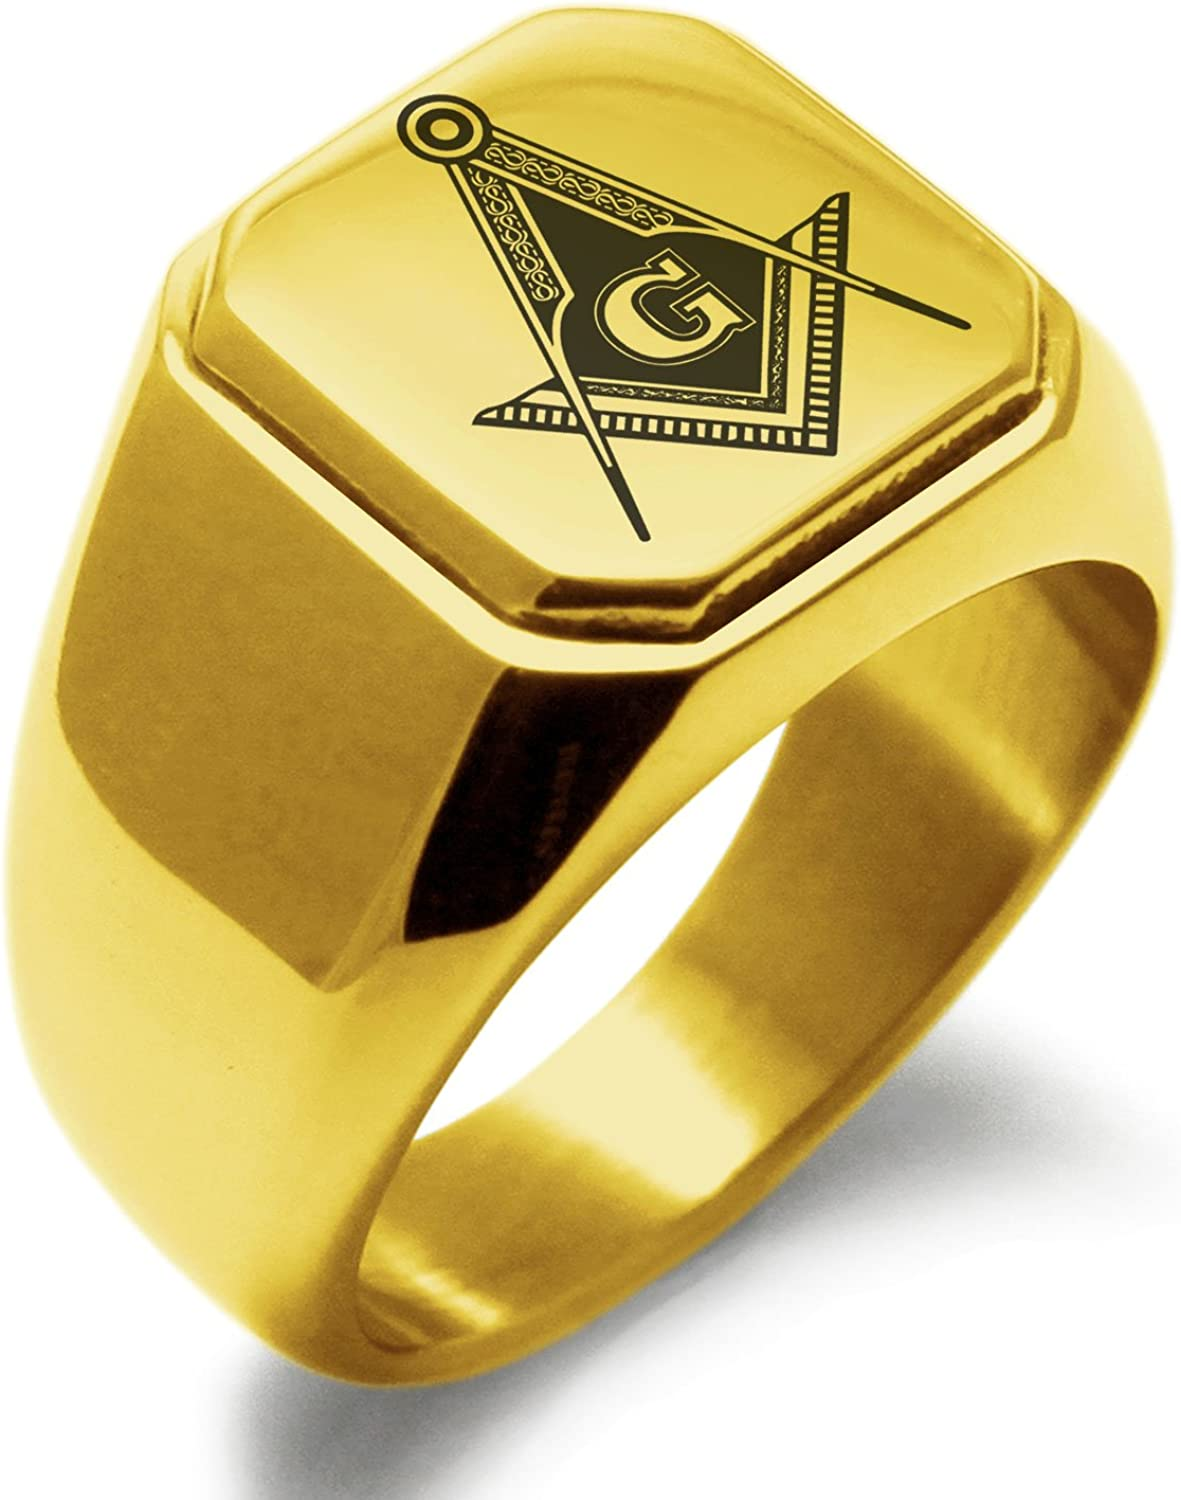 Stainless Steel Black Square /& Compass Masonic Symbol Flat Polished Band Ring